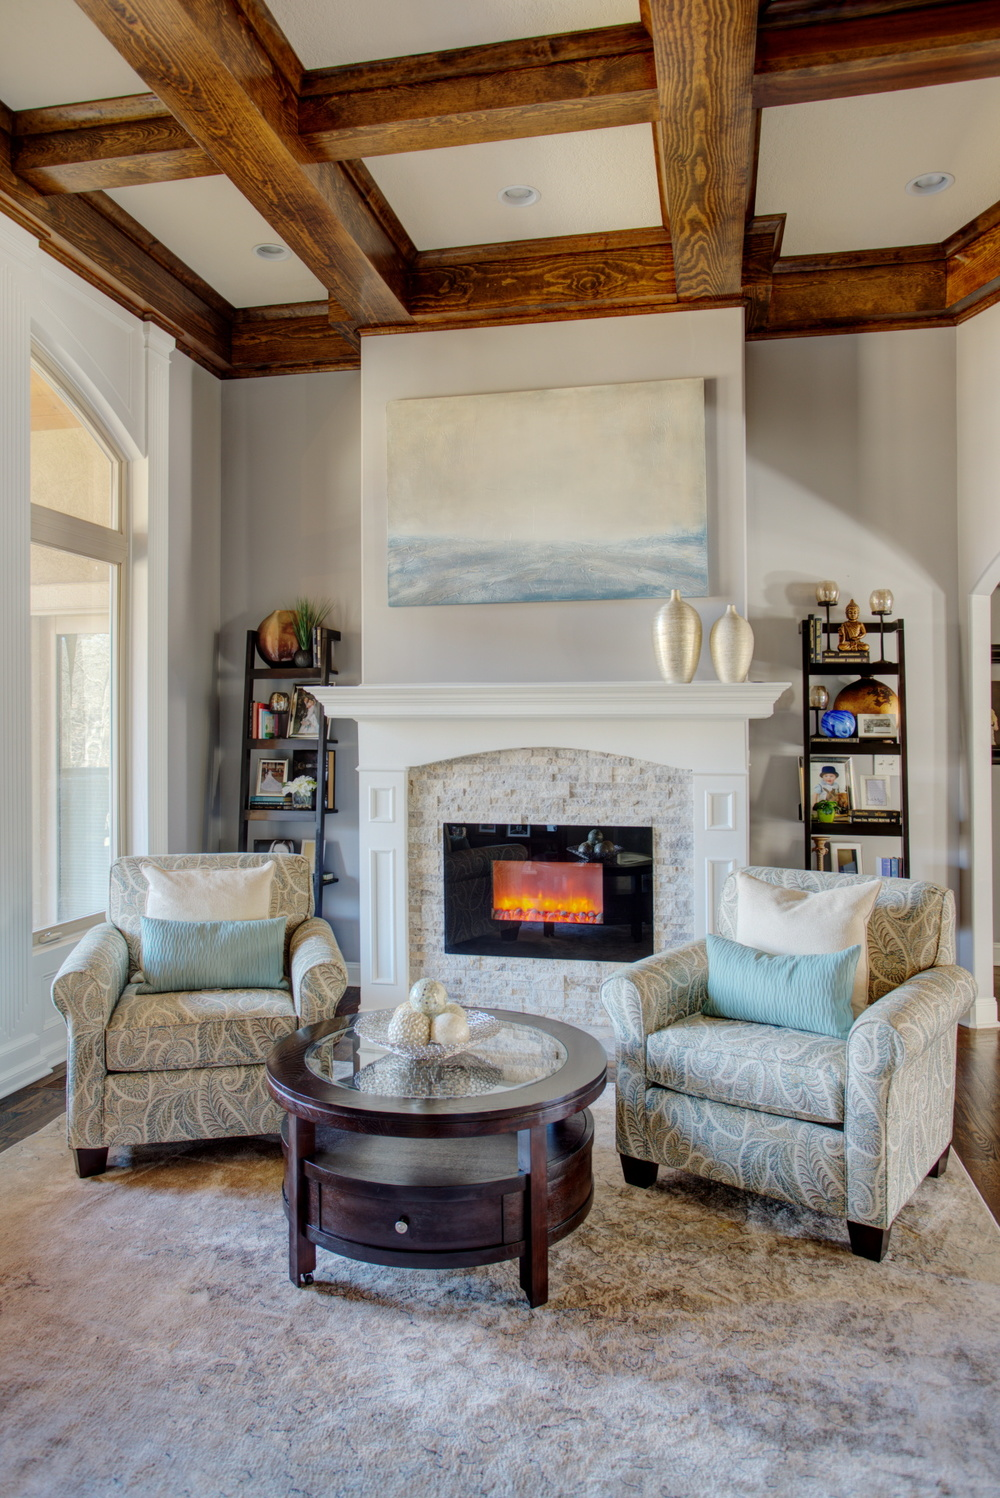 A remodeled sitting room idea, picture from houzz.com.